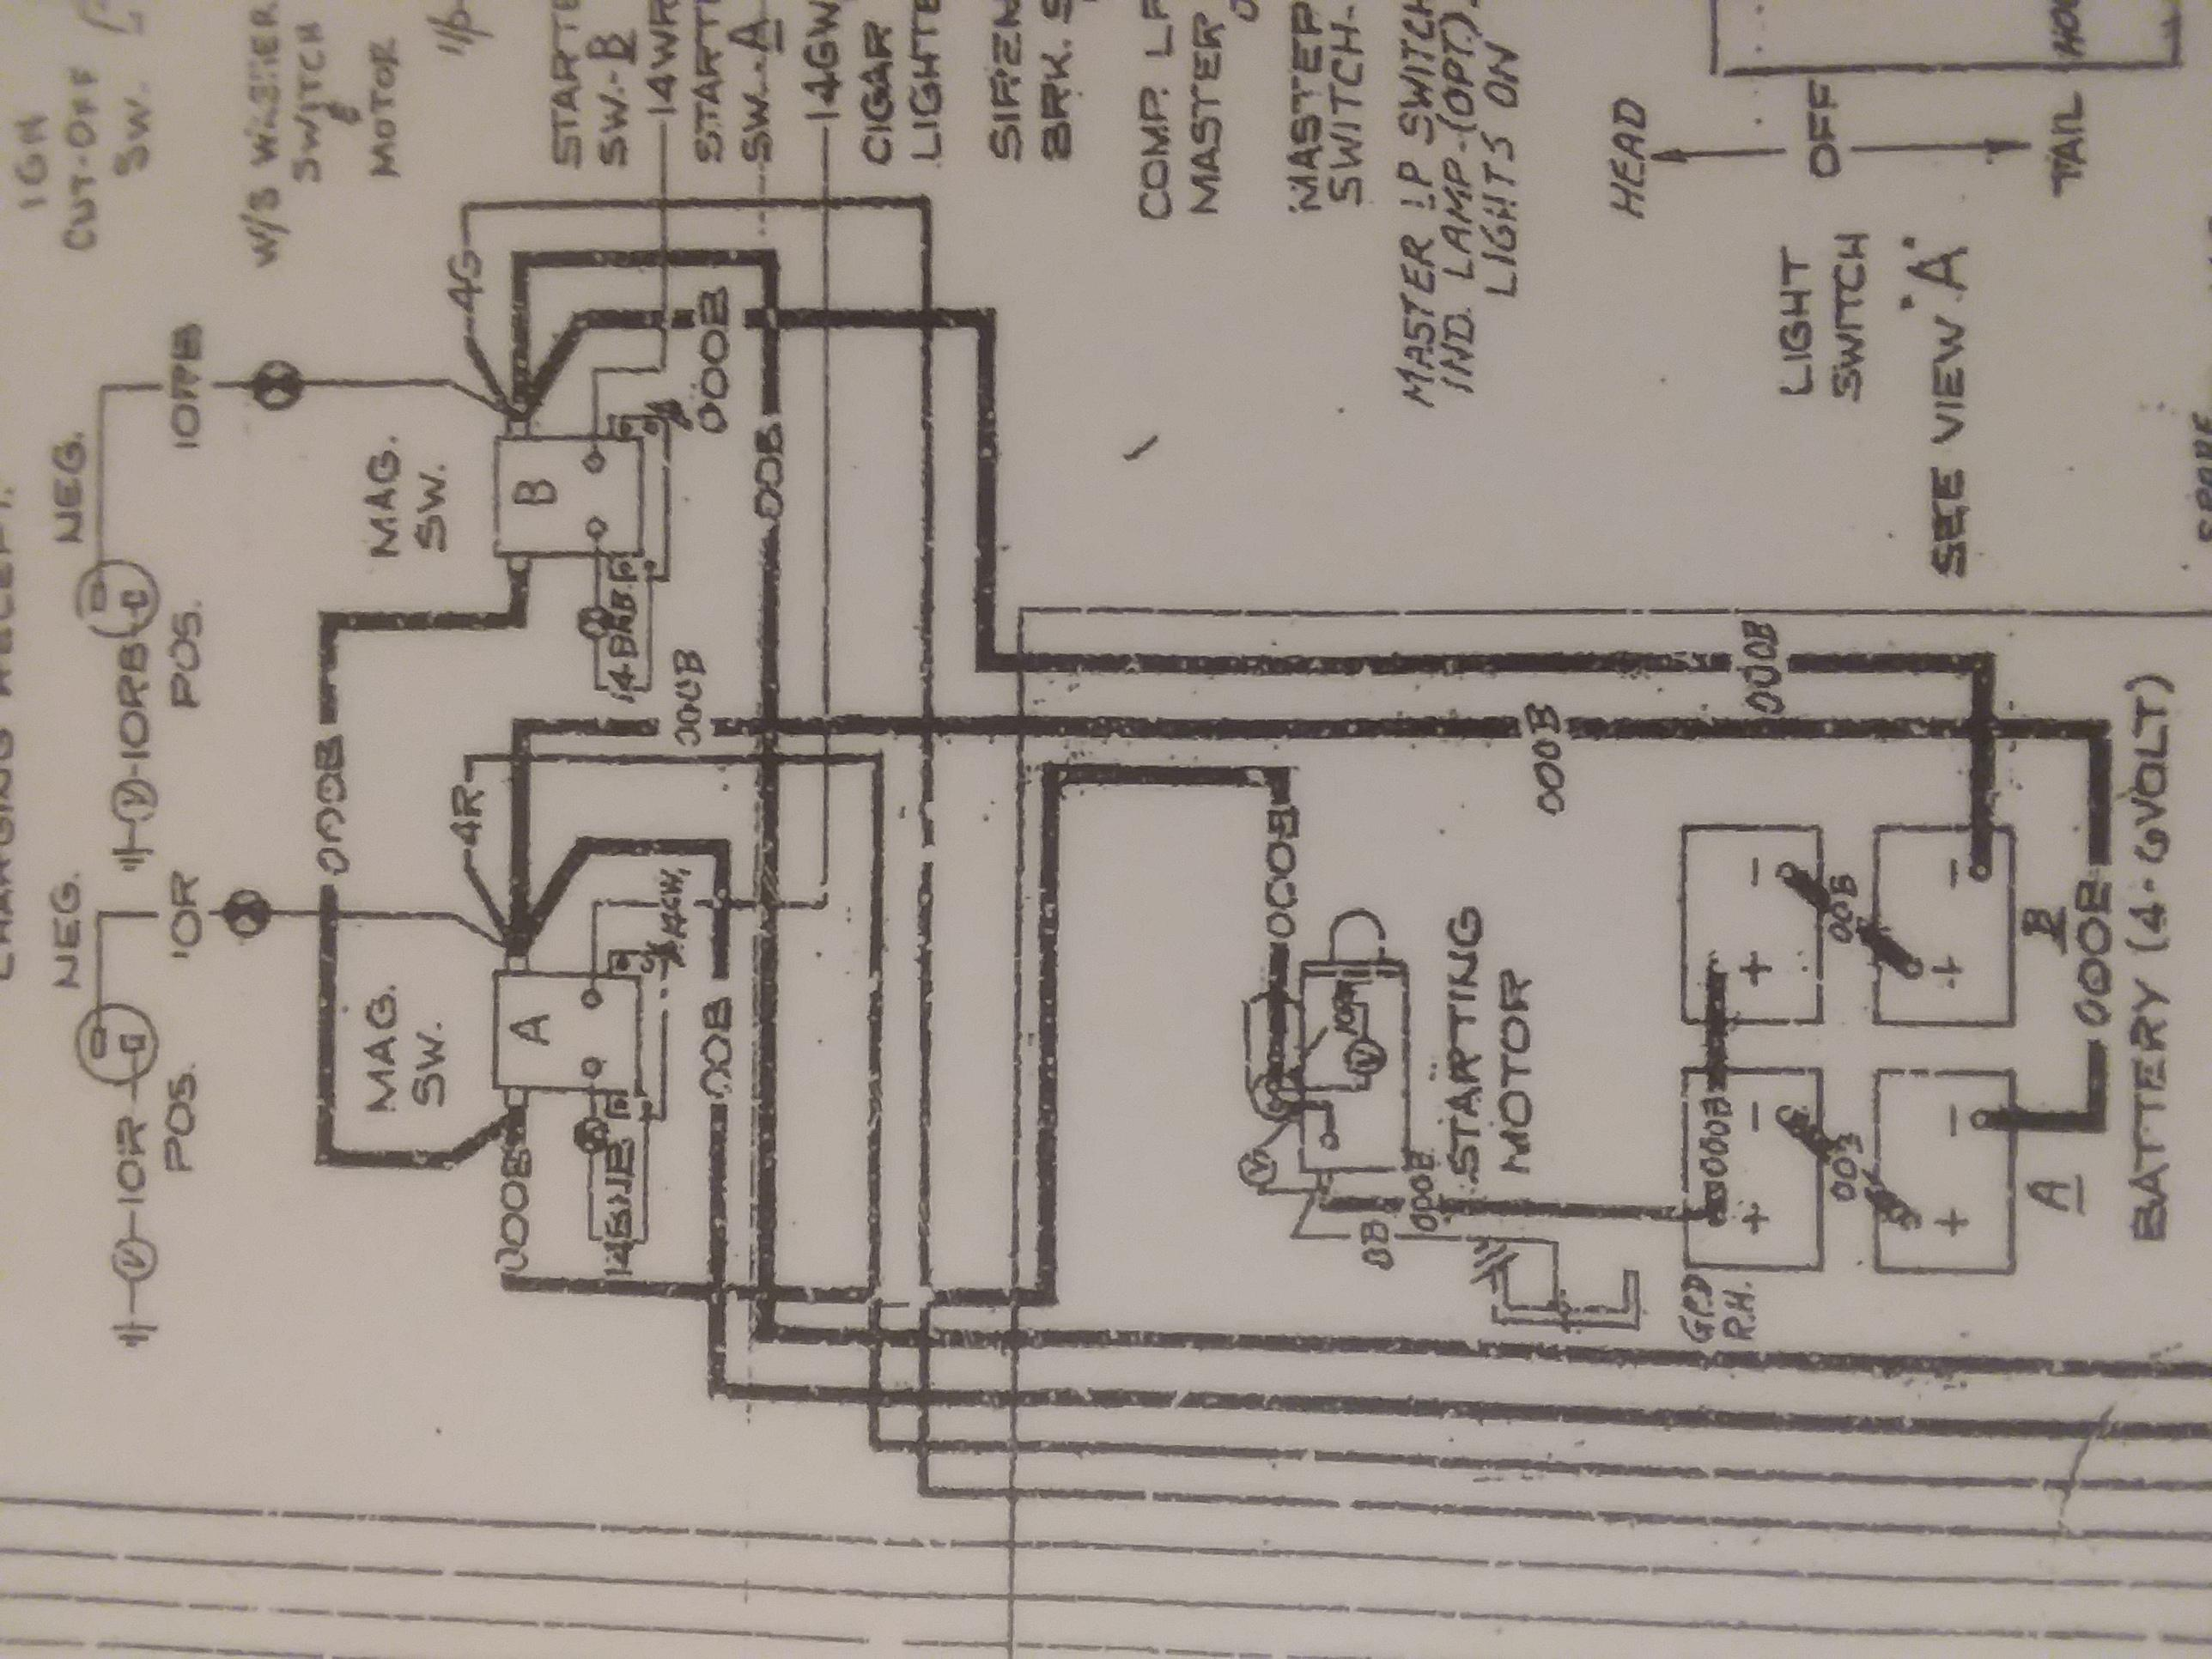 Wiring A Relay For Negative Trigger